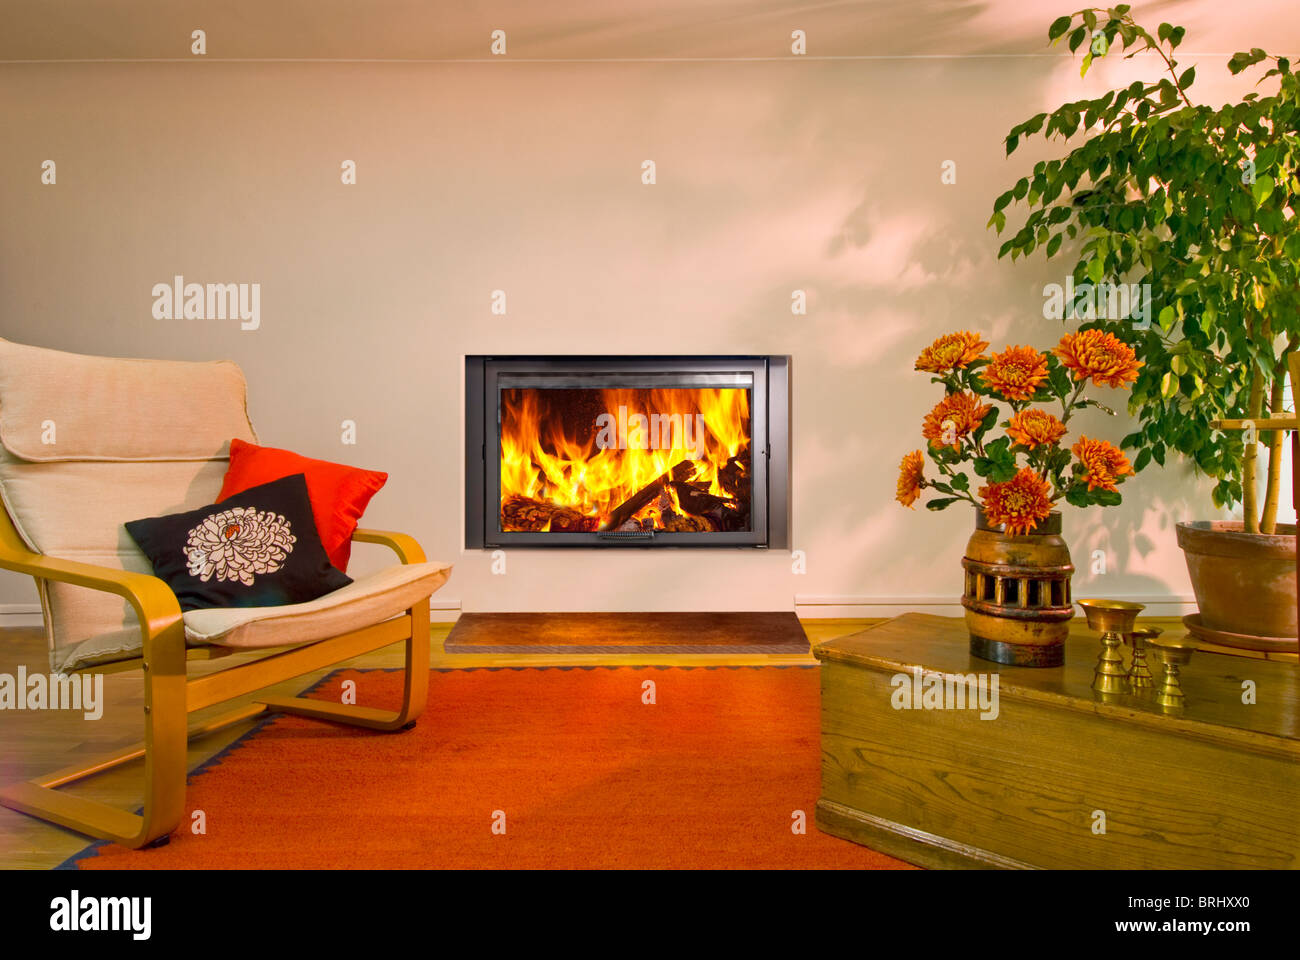 An Aquatherm Eco insert wood burning stove with flames - Stock Image